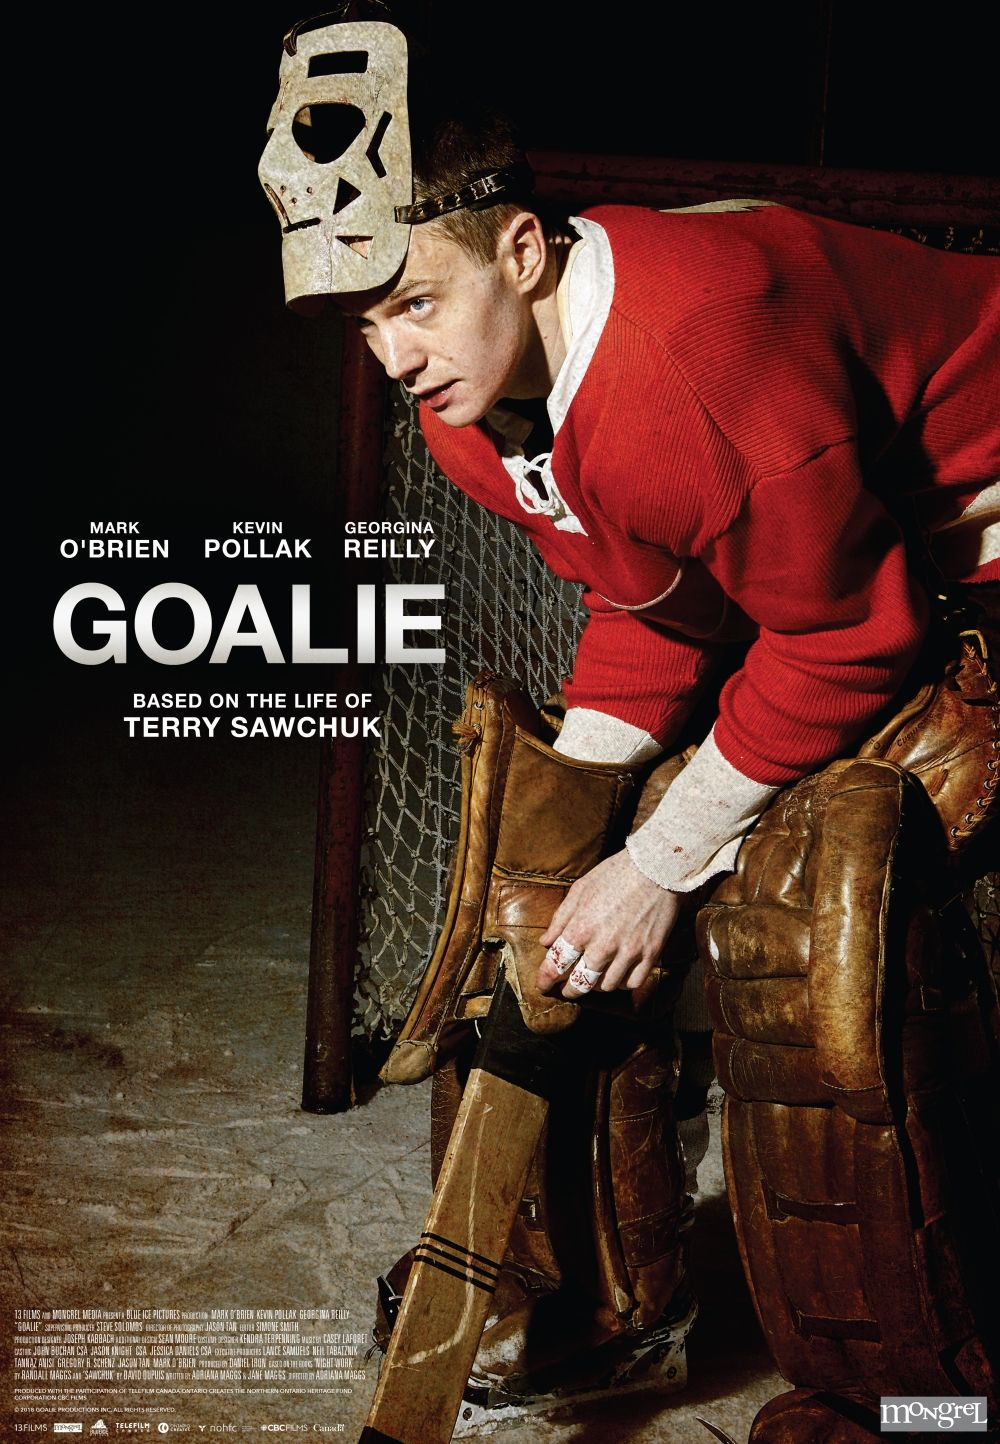 Goalie movie trailer